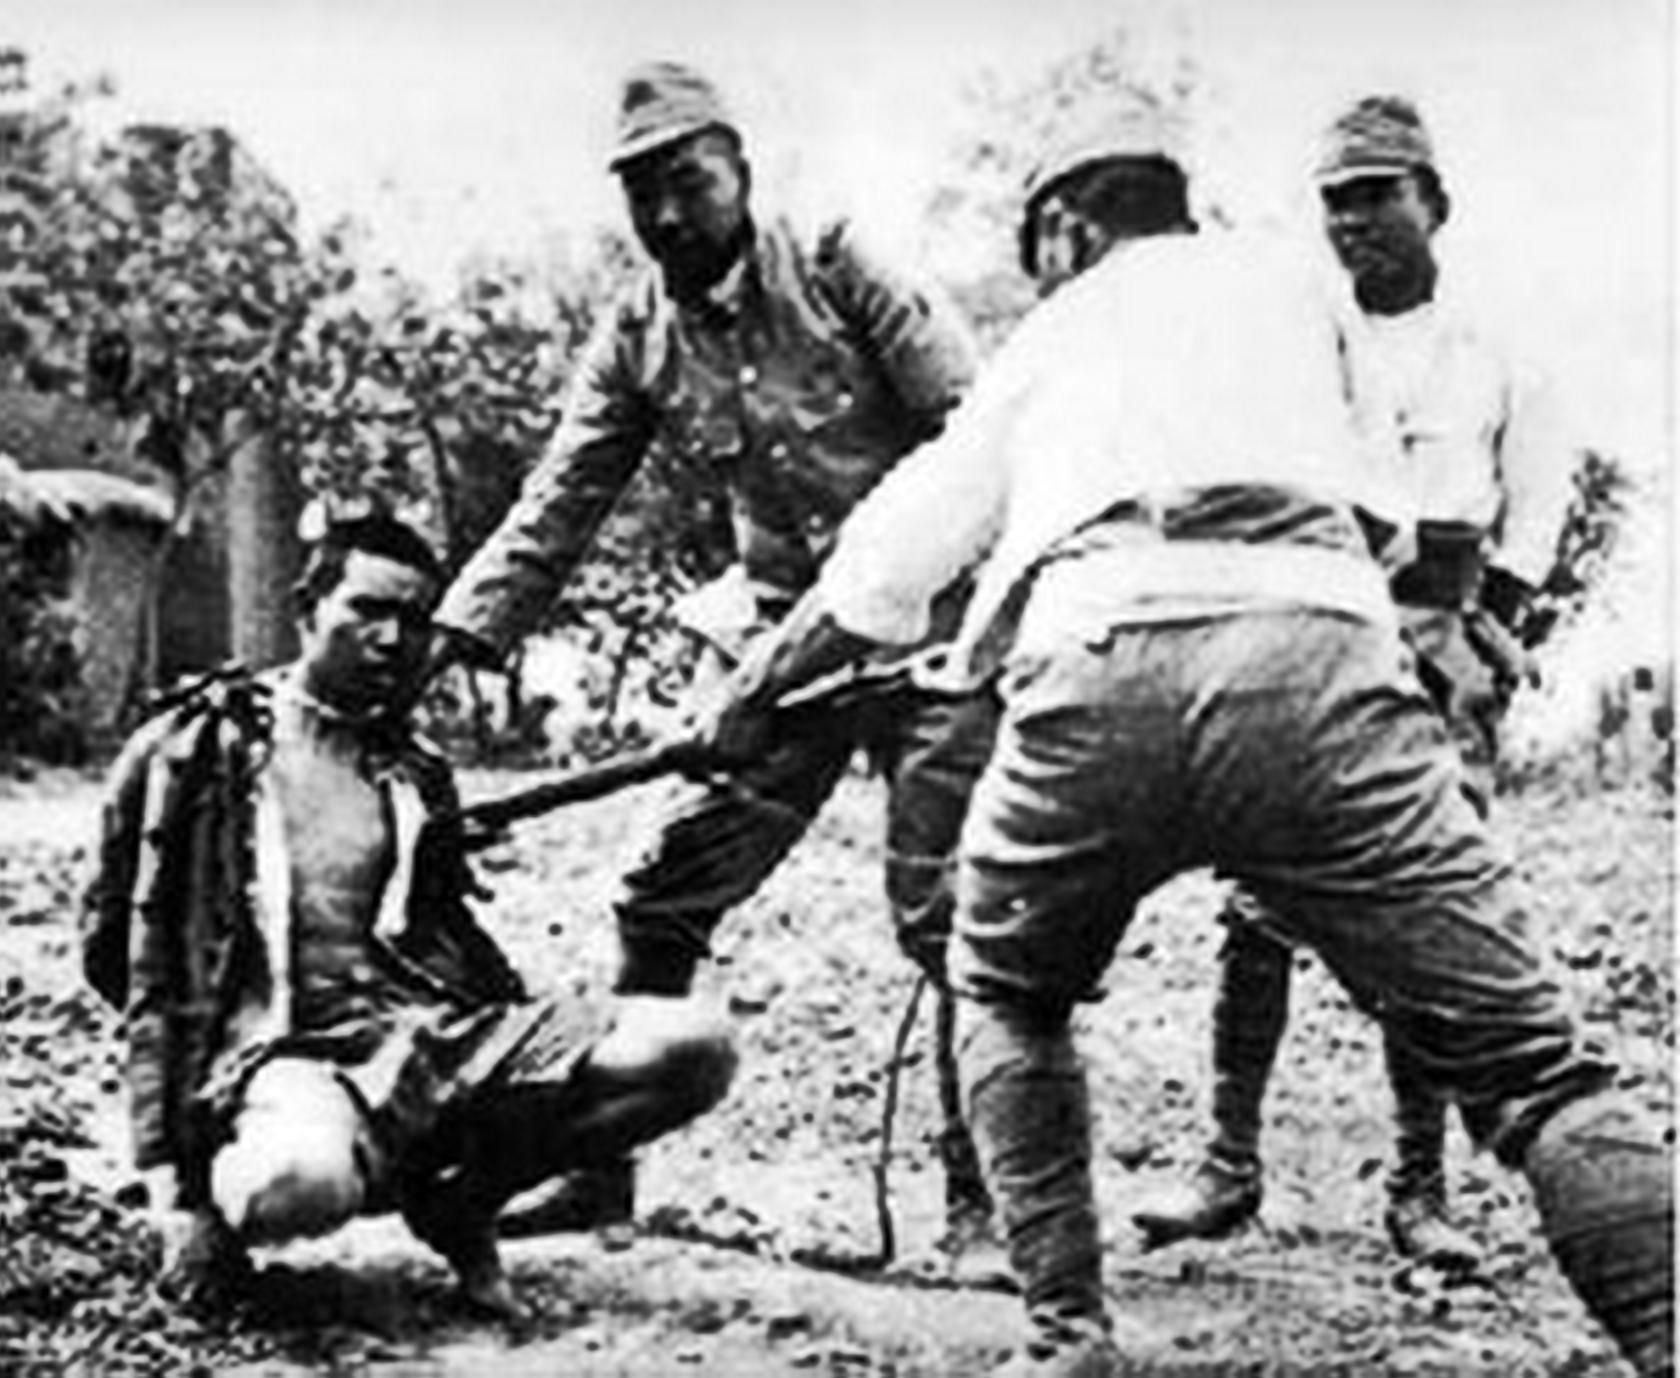 Japanese soldiers harassing a prisoner with a bayonet.